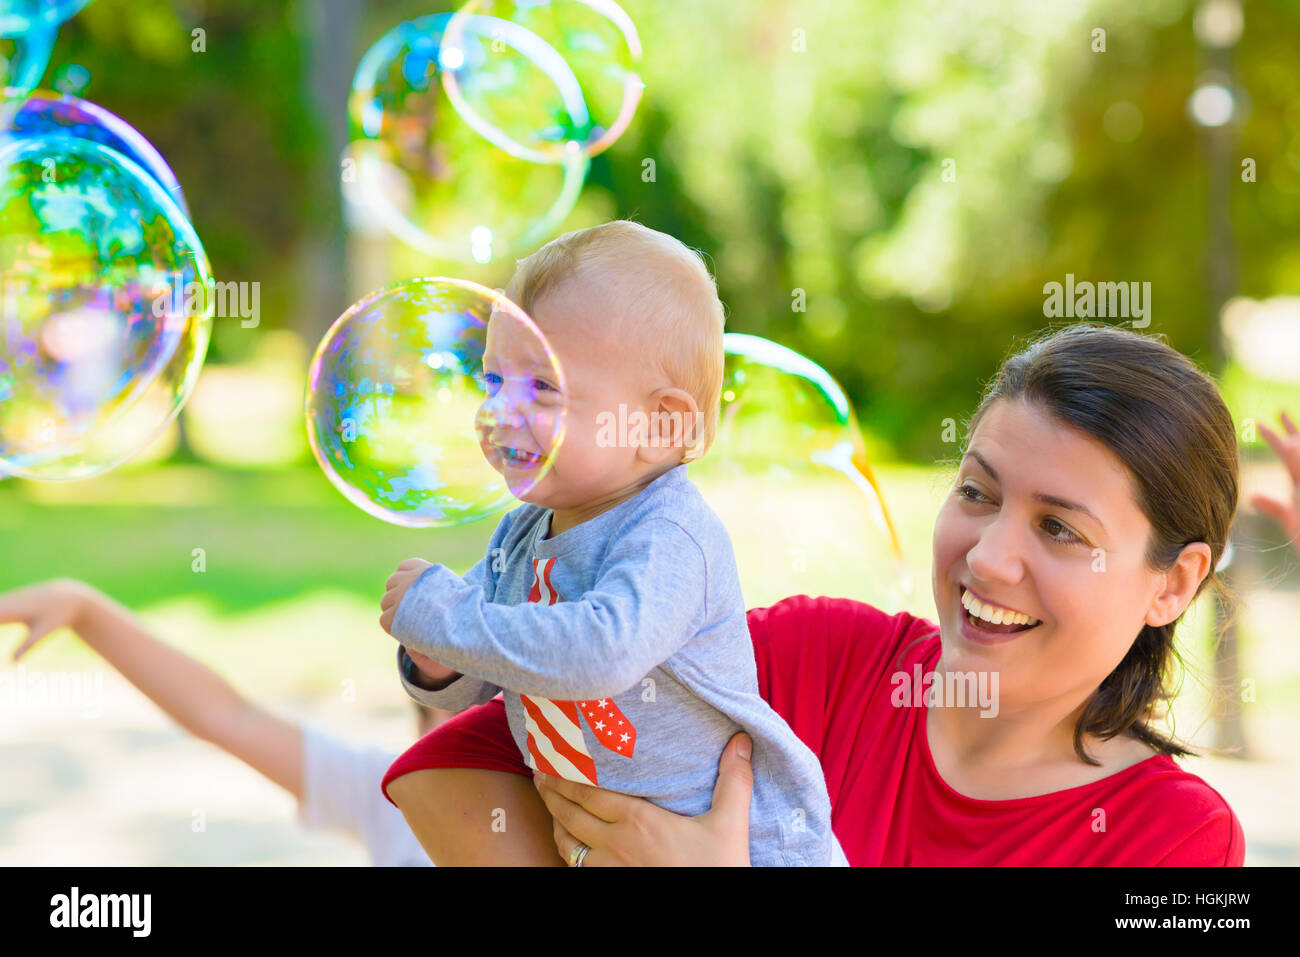 Cute baby and his mother catching soap bubbles in a summer day - Stock Image